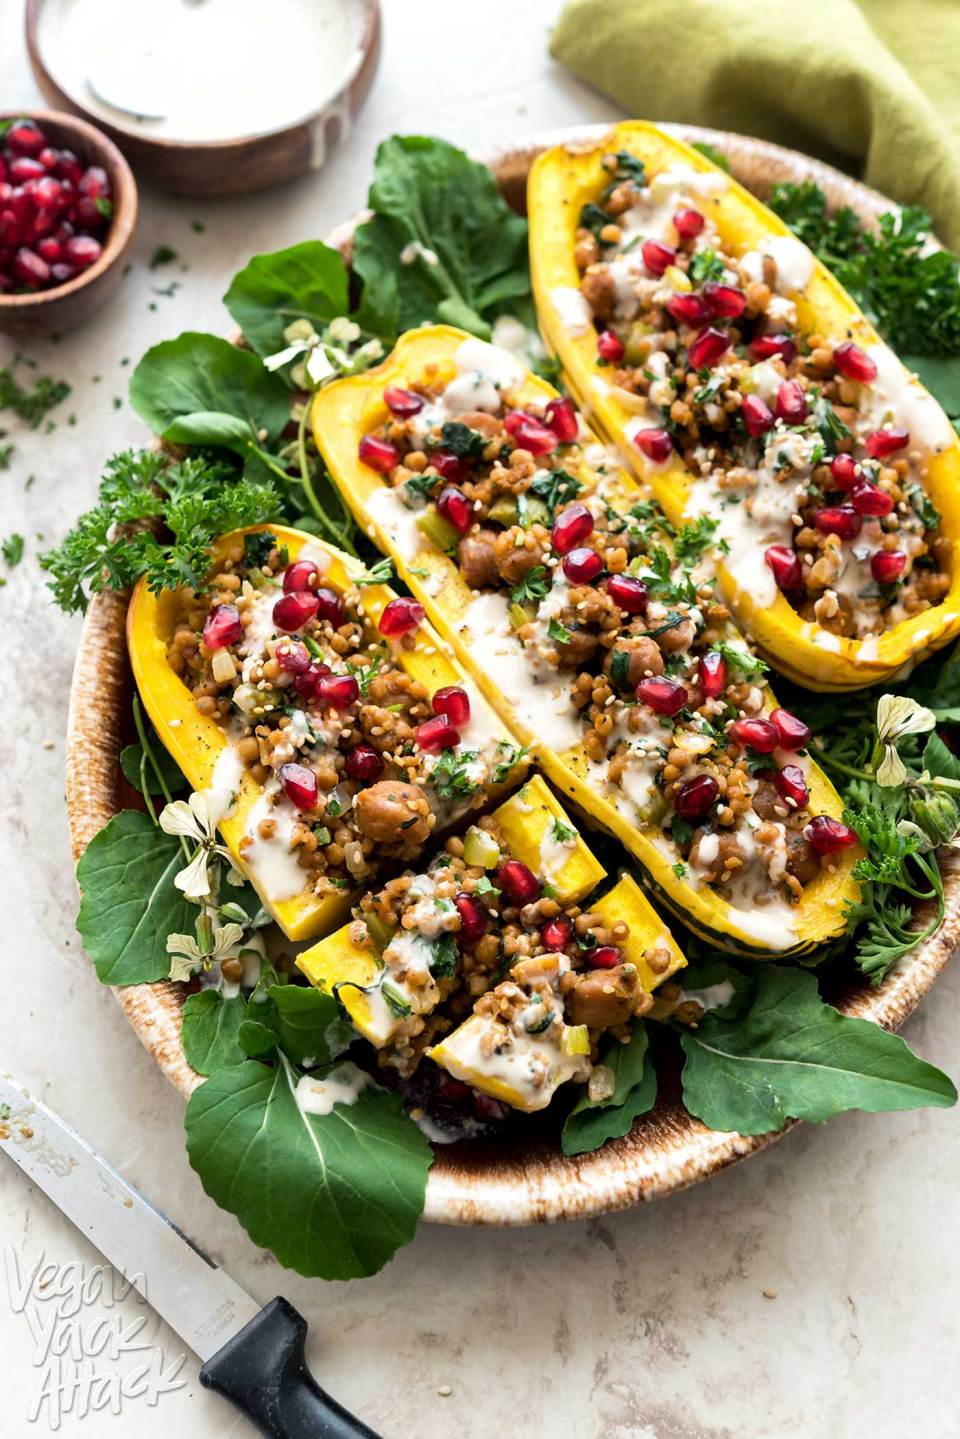 These Couscous-Stuffed Delicata Squash make for a beautiful and comforting dish, to adorn your holiday table, this year! Made with Wild Garden Pilaf. #vegan #soyfree #nutfree #WildGardenEats